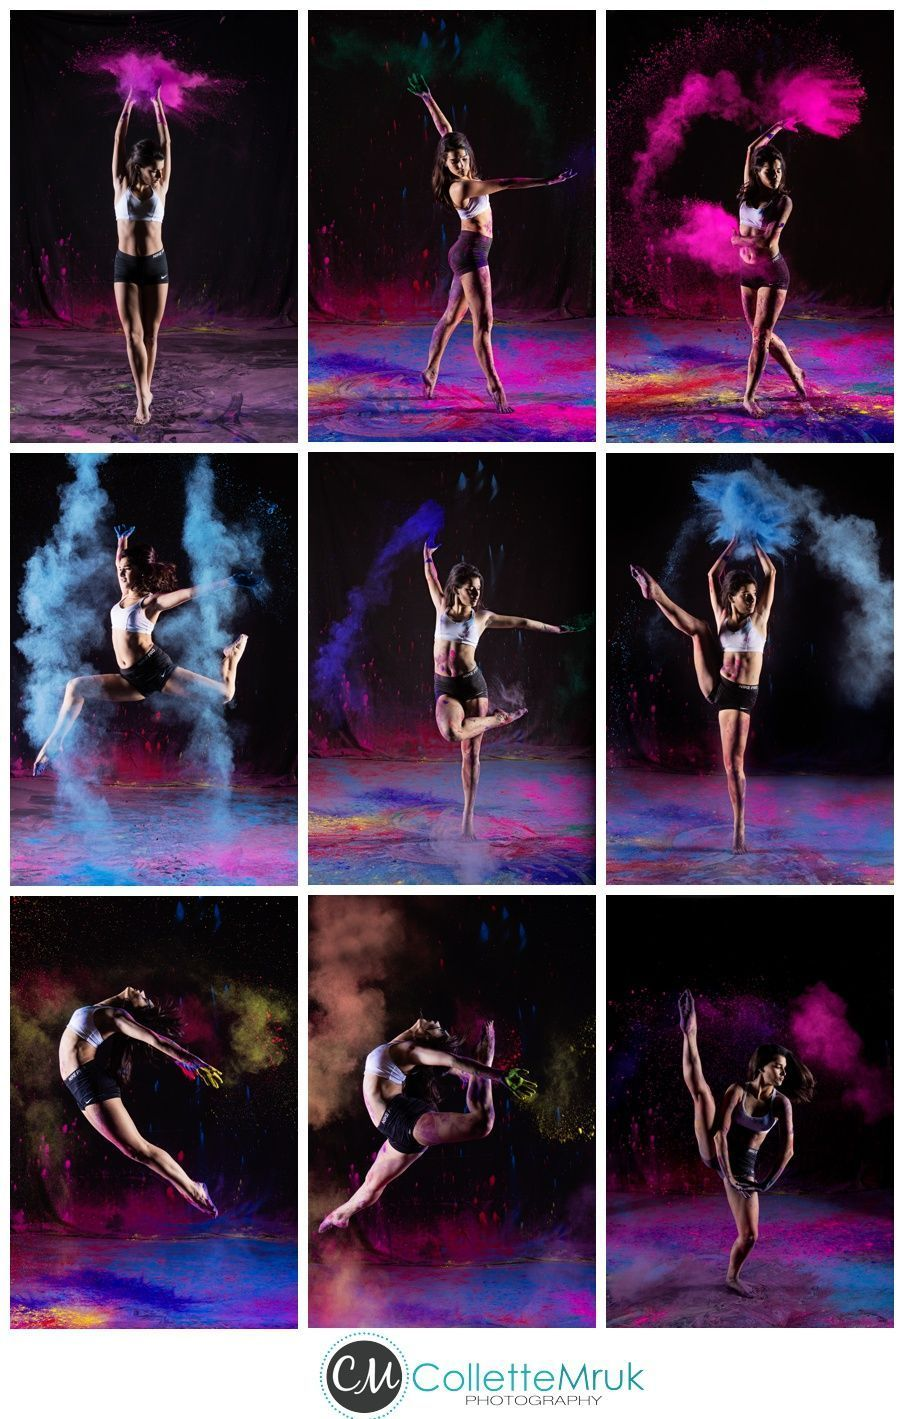 Powder Dance Danzforce Extreme Studio Orlando Floridafor Years I Have Wanted To Do A Powder Shoot In 2020 Dance Photo Shoot Dance Photography Powder Paint Photography